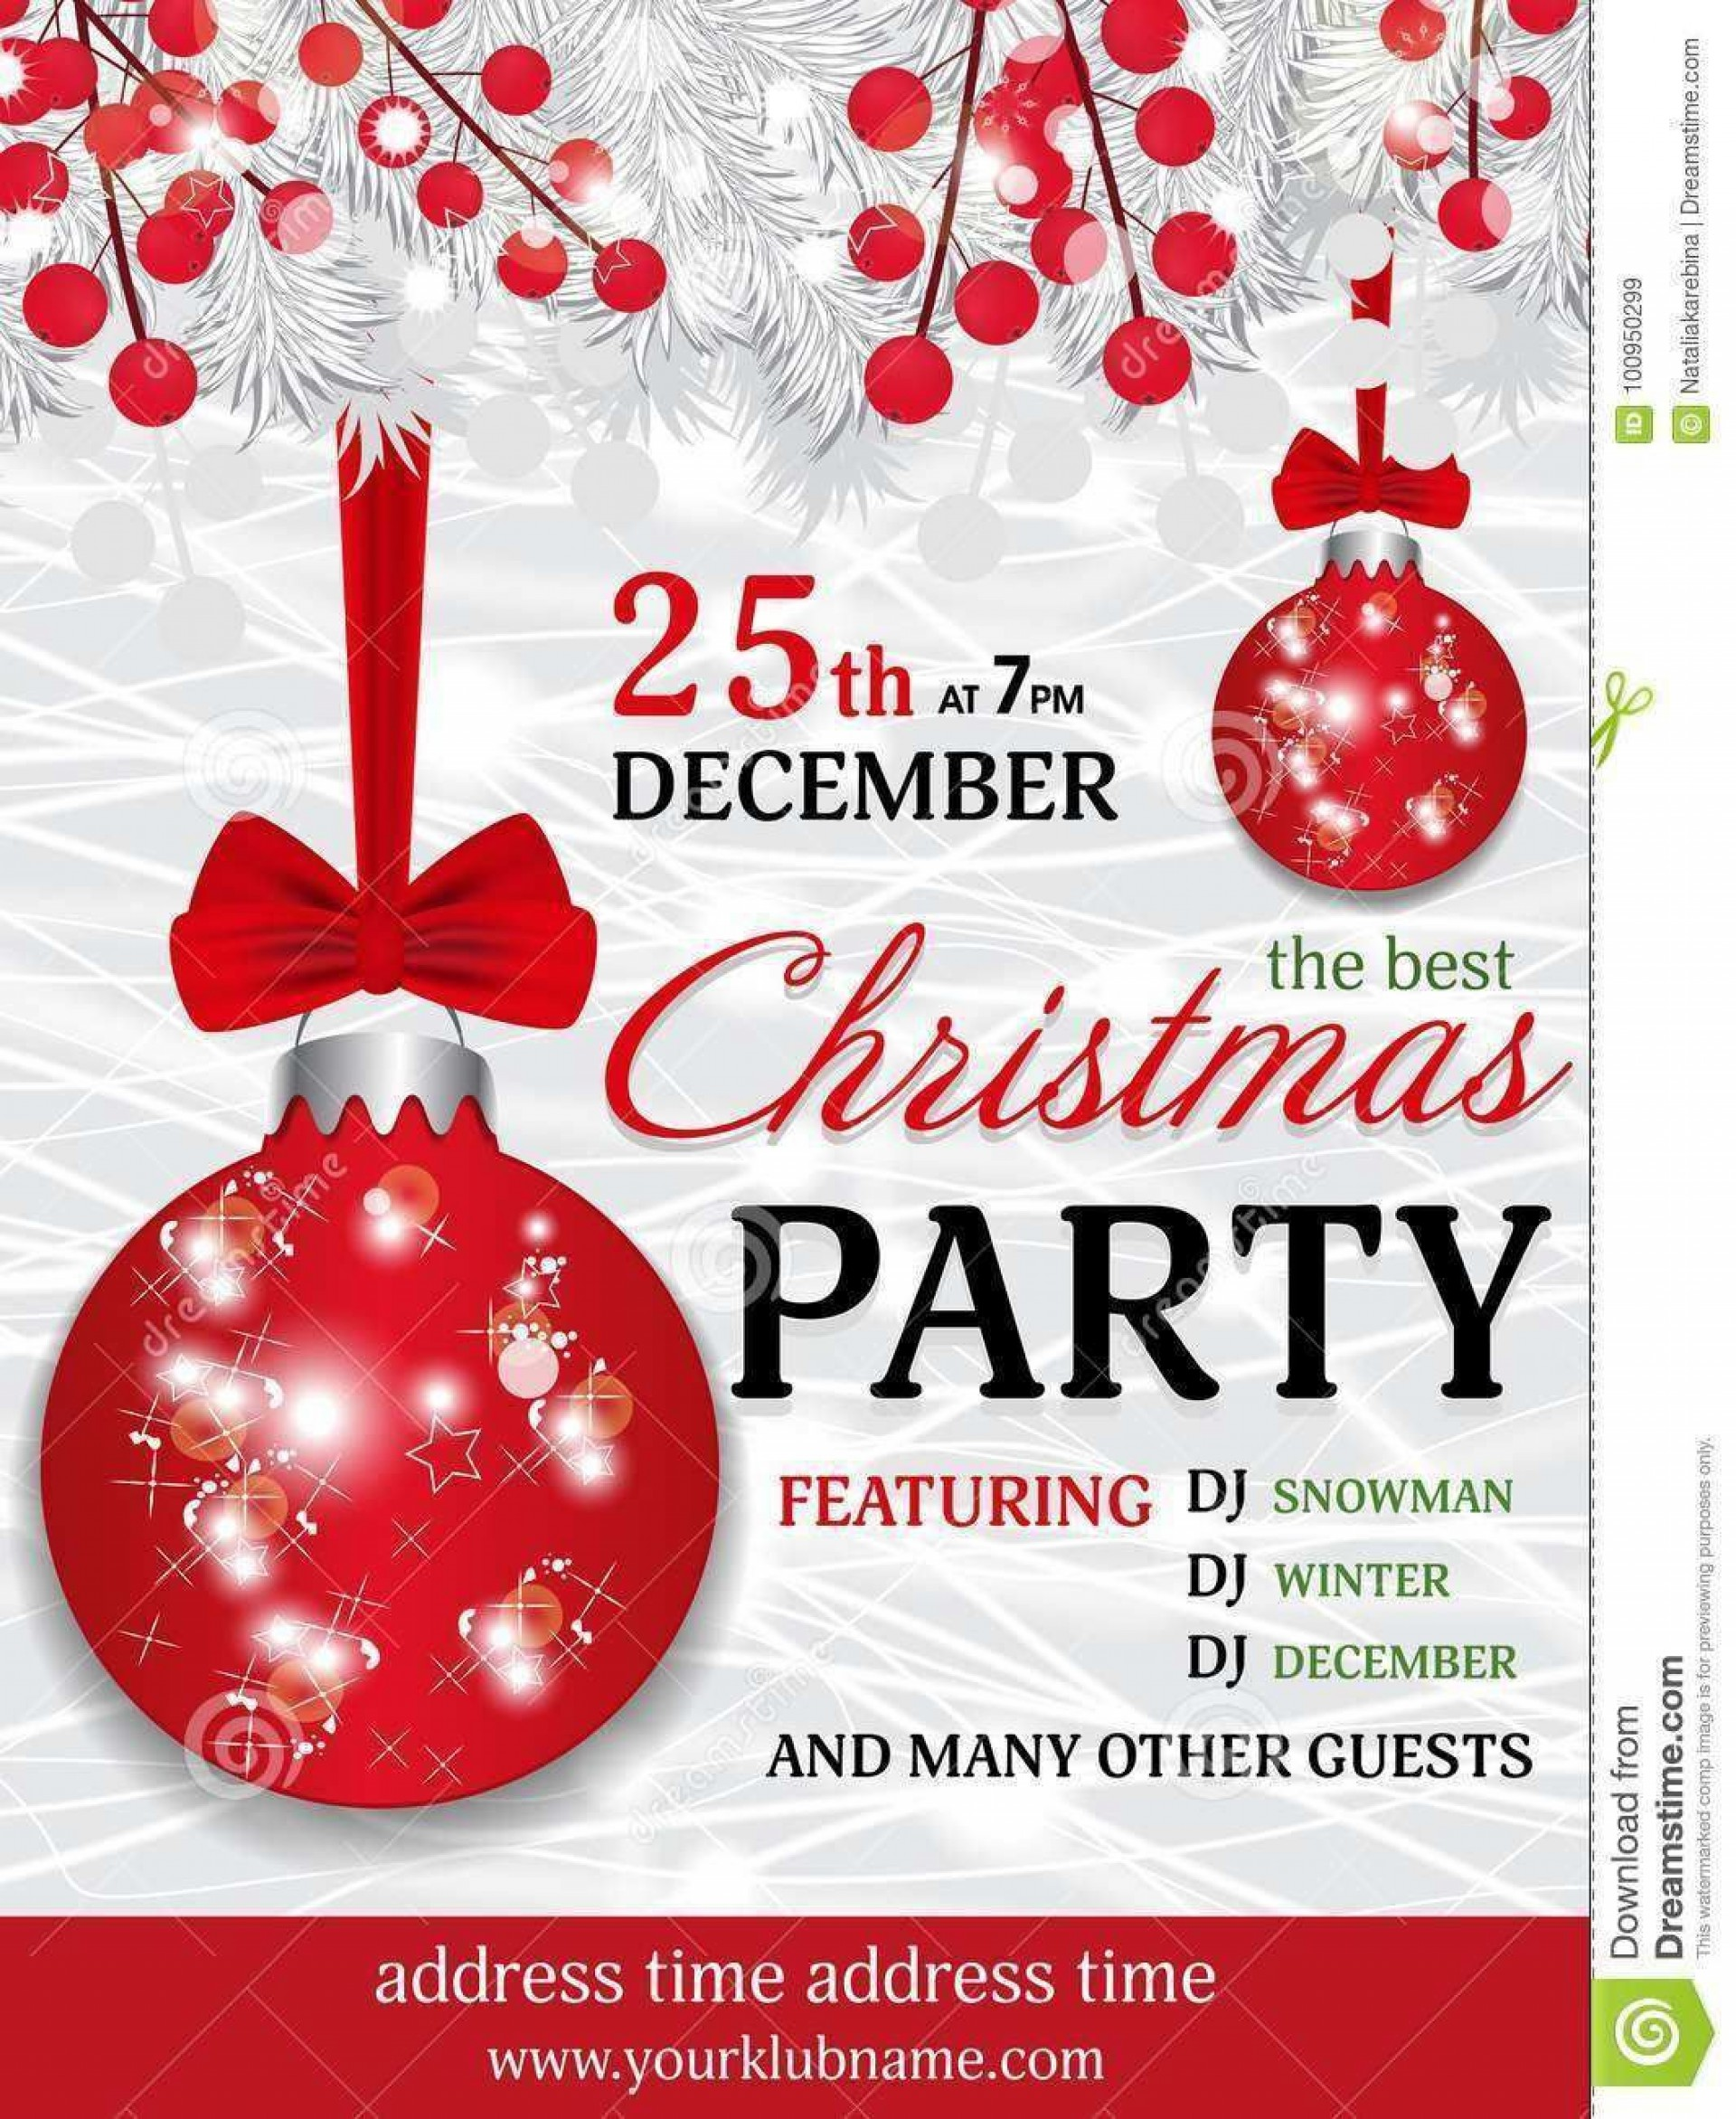 000 Impressive Christma Party Invite Template Free Download Concept  Funny Invitation Holiday1920